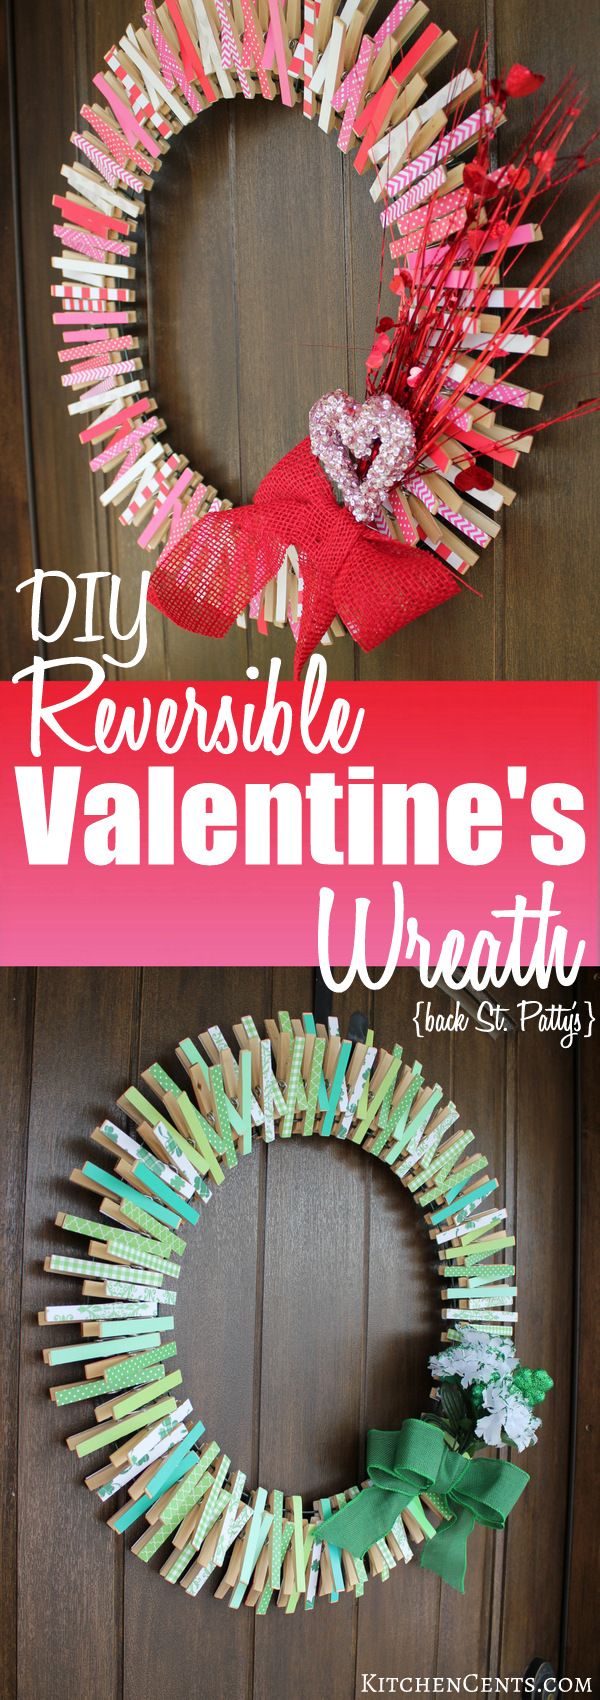 diy reversible clothespin valentines wreath st pattys